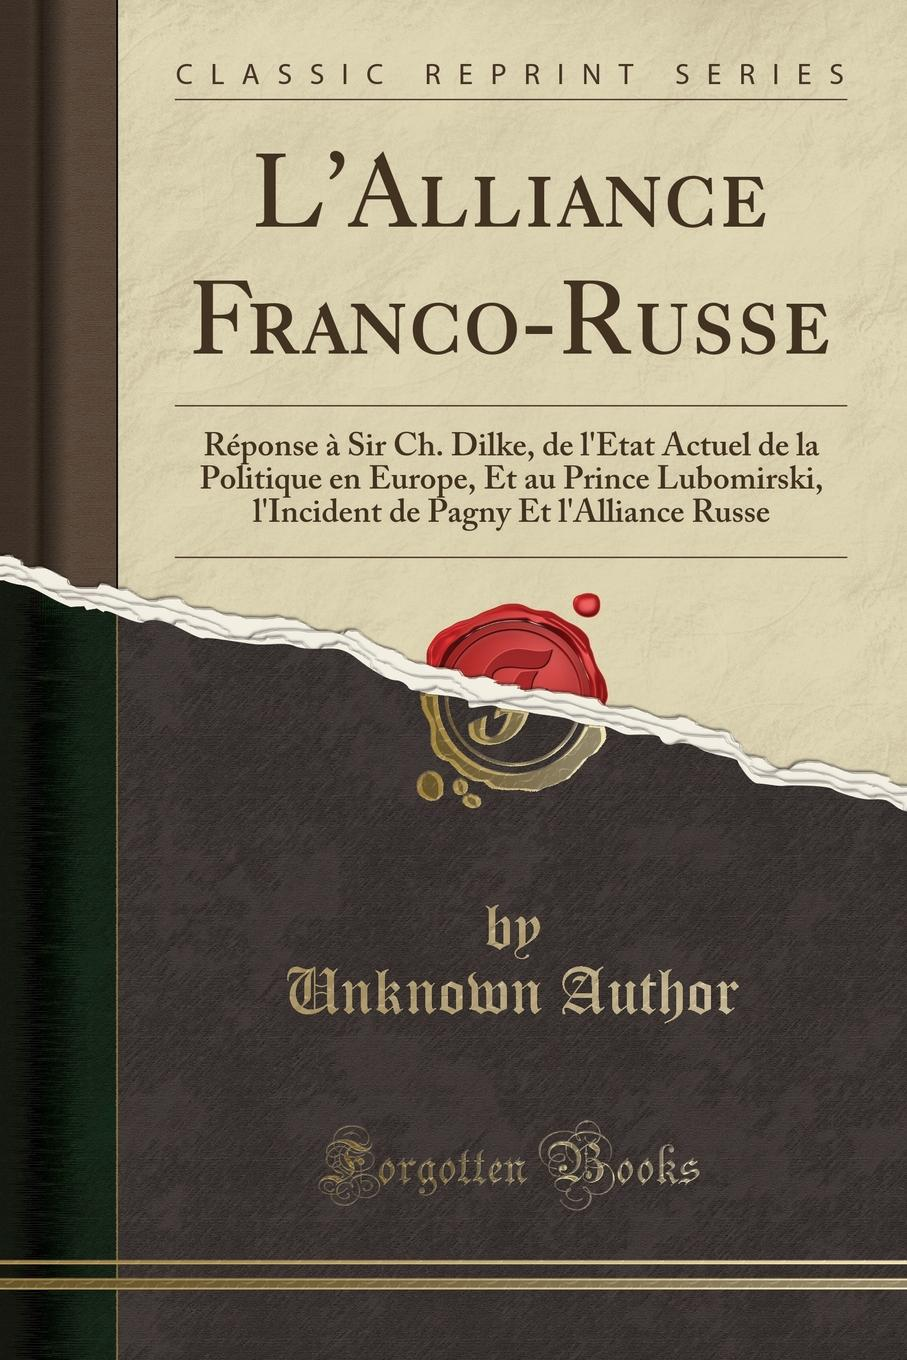 лучшая цена Unknown Author L.Alliance Franco-Russe. Reponse a Sir Ch. Dilke, de l.Etat Actuel de la Politique en Europe, Et au Prince Lubomirski, l.Incident de Pagny Et l.Alliance Russe (Classic Reprint)